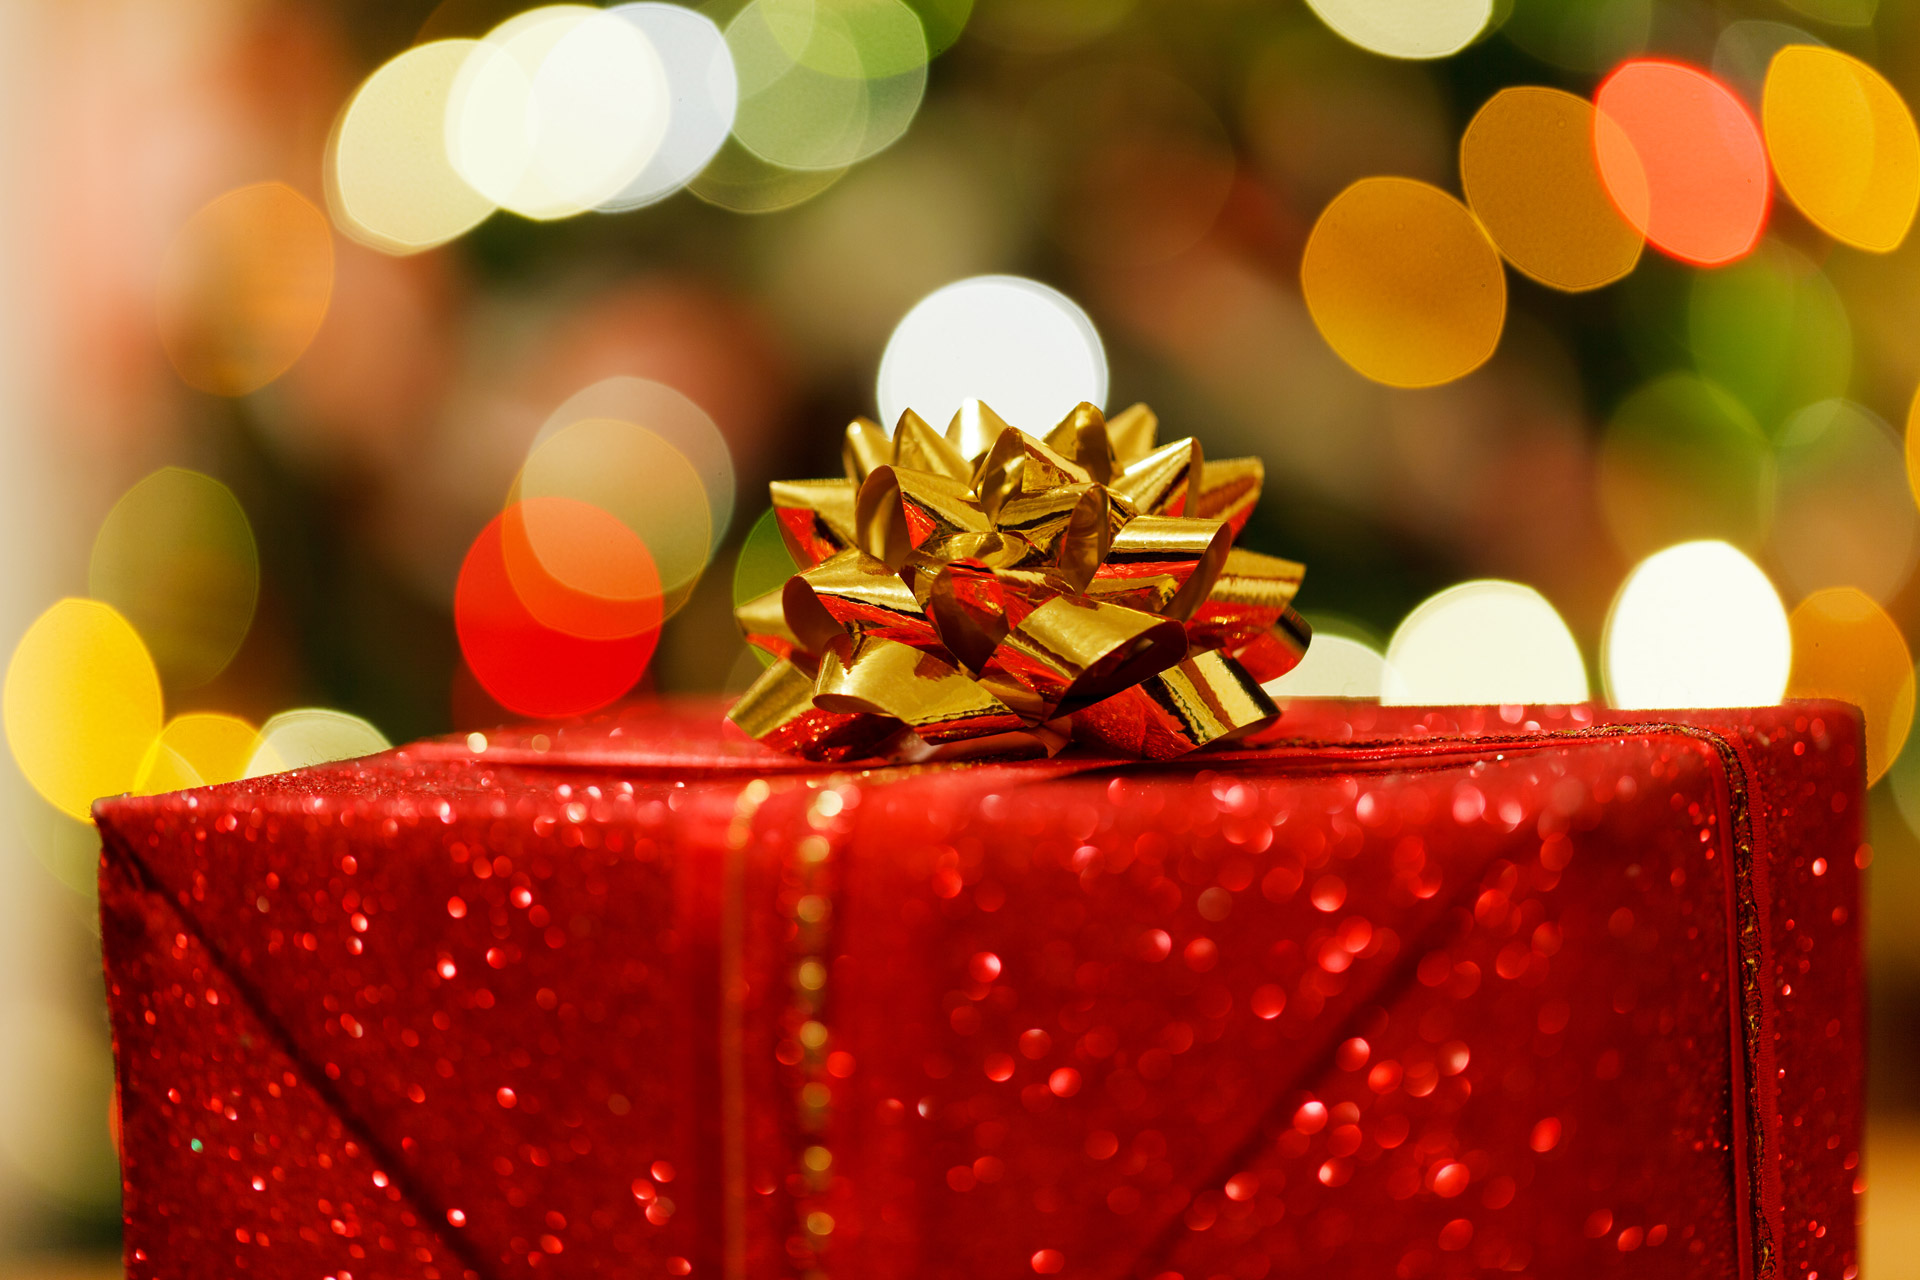 Box wrapped in glittery red wrapping paper with a golden bow and Christmas lights twinkling behind it